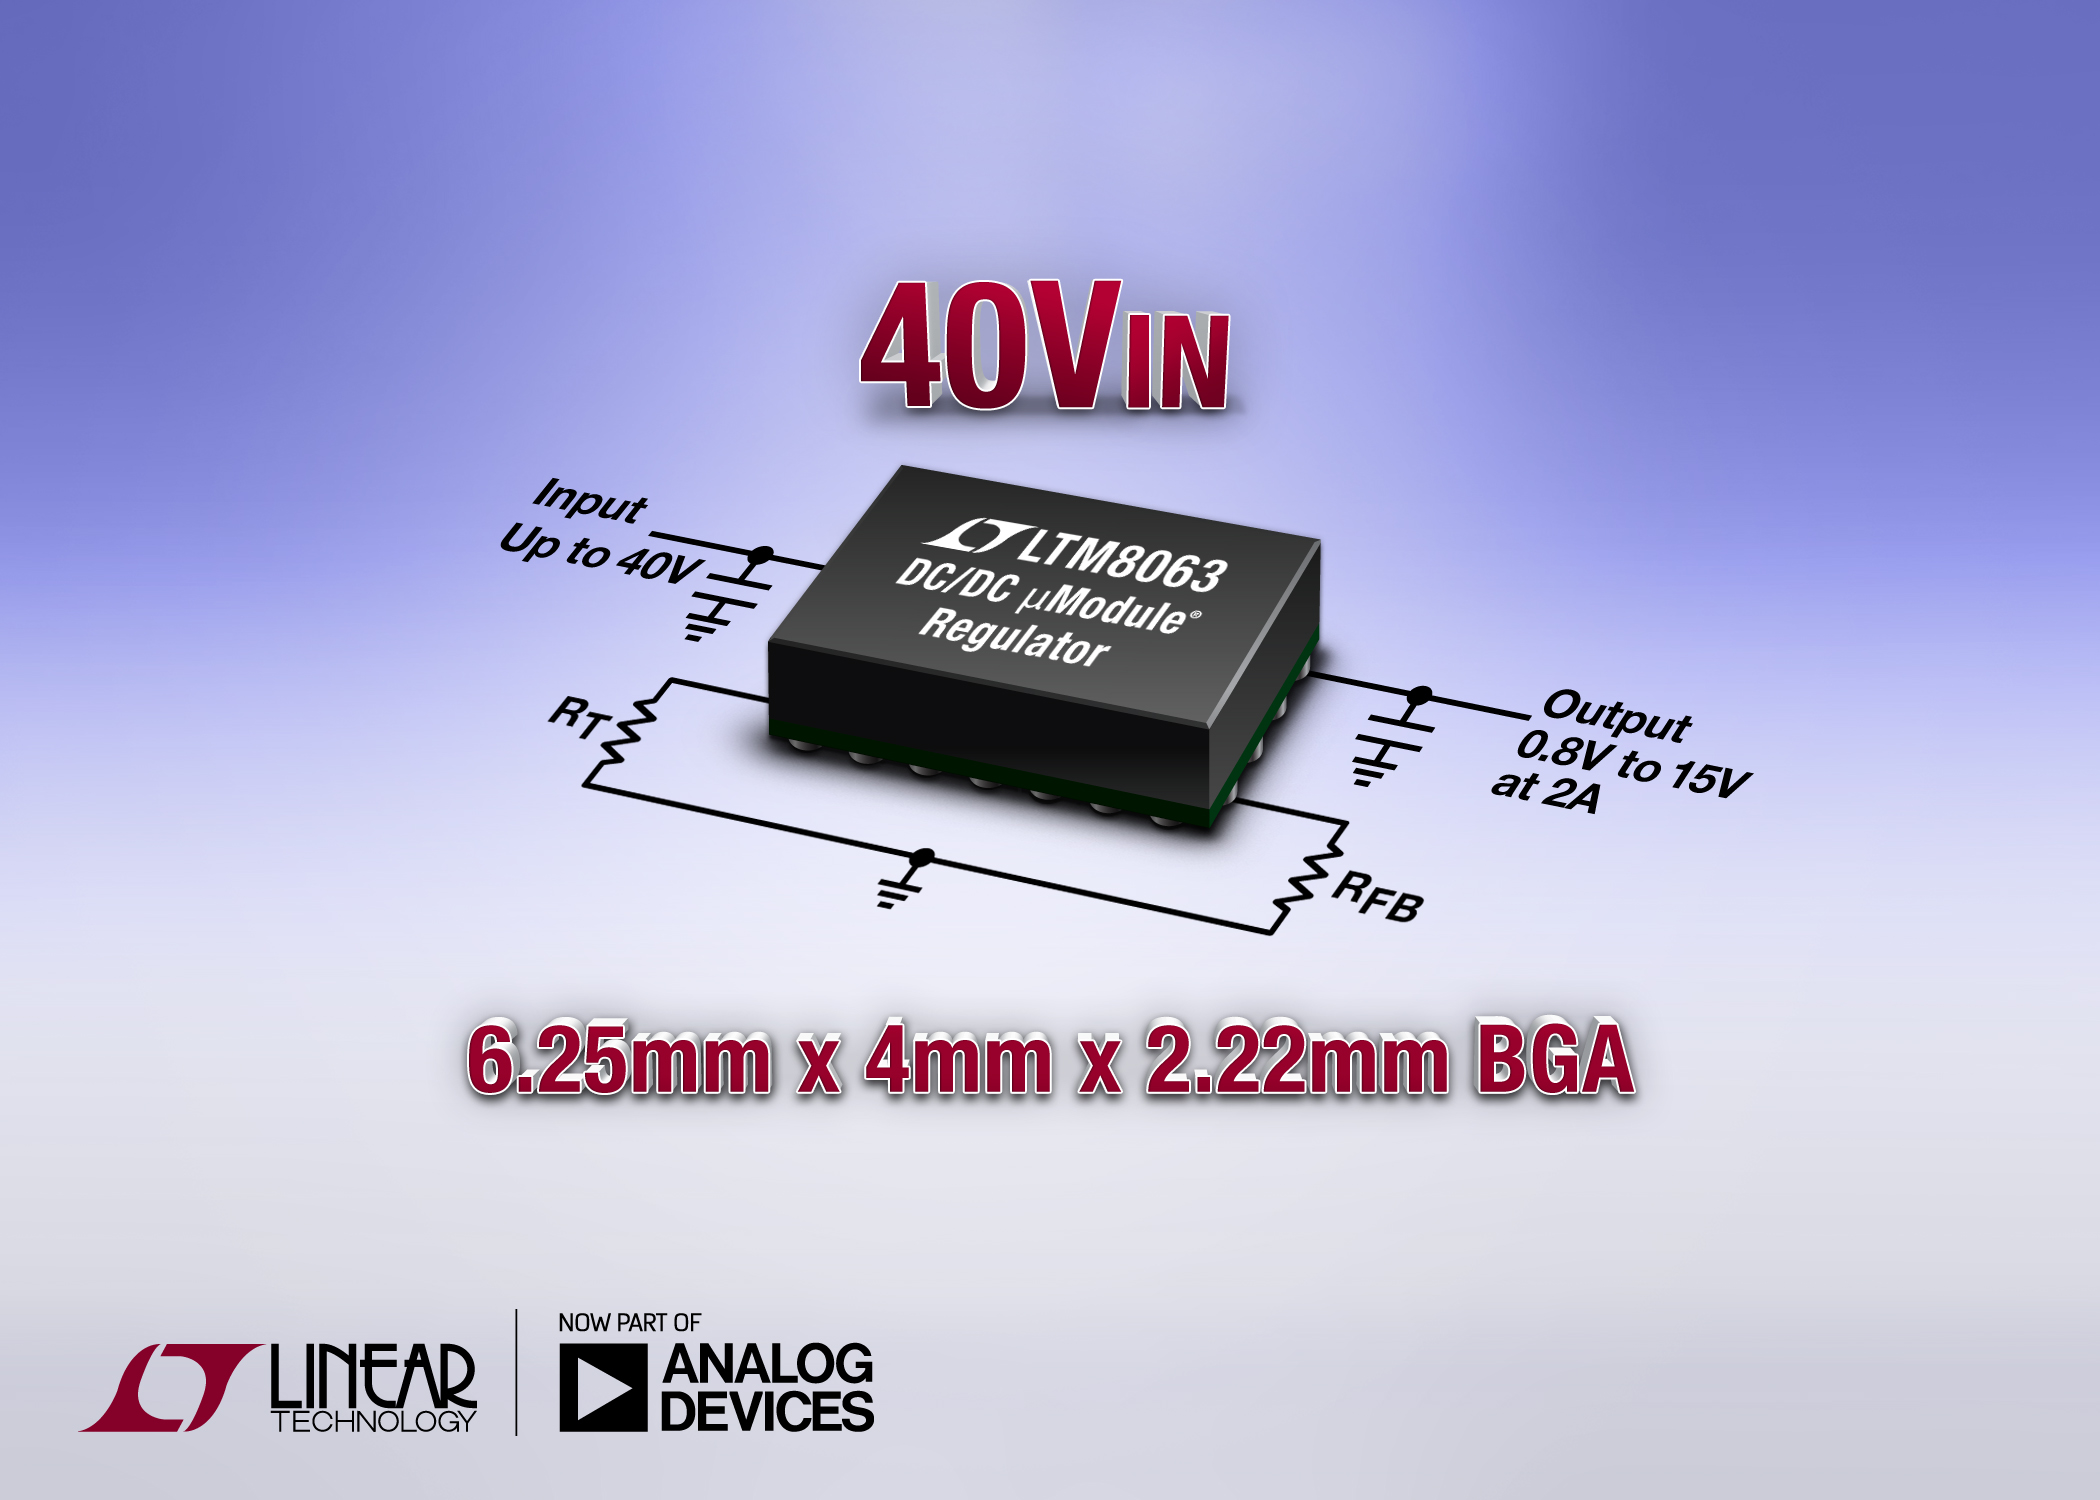 40VIN, 2A Silent Switcher ÂμModule Regulator in 6.25mm x 4mm BGA Package